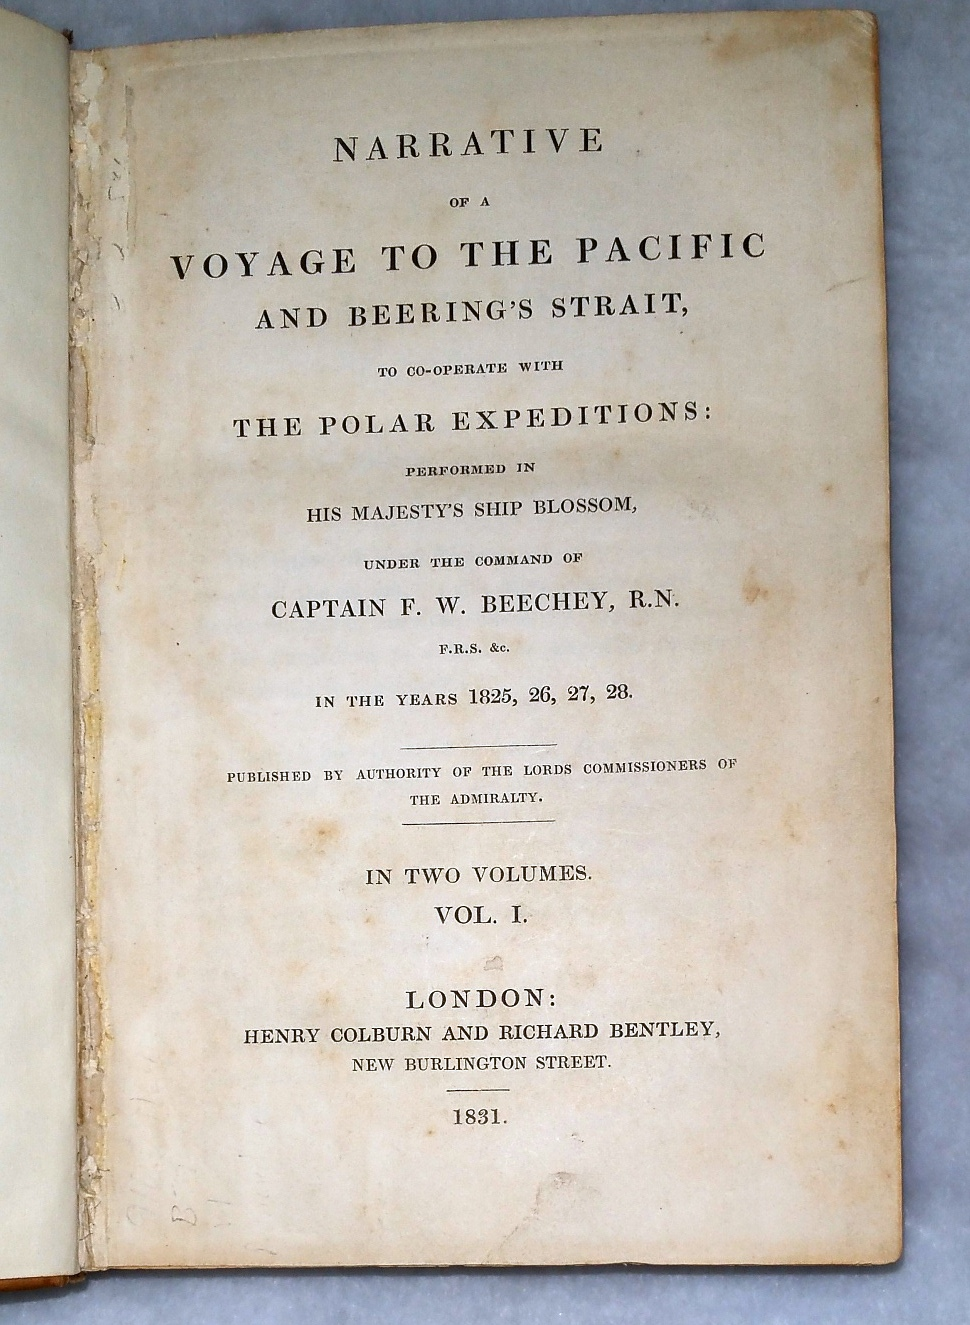 Image for Narrative of a Voyage to the Pacific and Beering's Strait, to Co-operate with the Polar Expeditions:  Performed in His Majesty's Ship Blossom, Under the Command of Captain F. W. Beechey // in the Years 1825, 26, 27, 28.